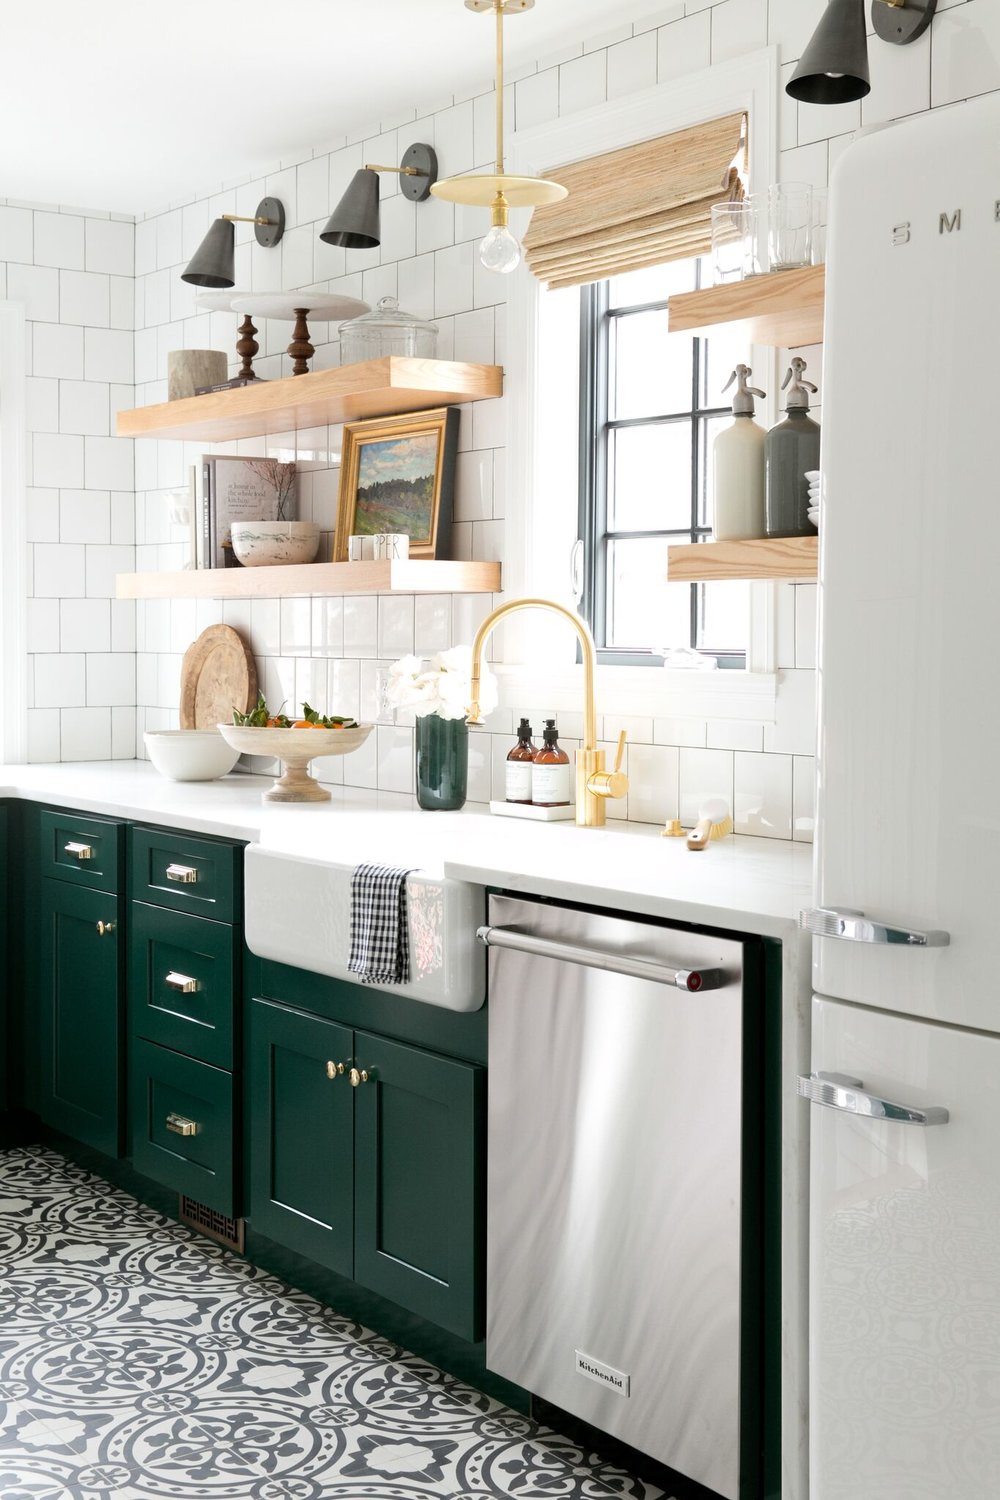 Kitchen Color Design Pictures Our Paint Guide To Cabinet Colors